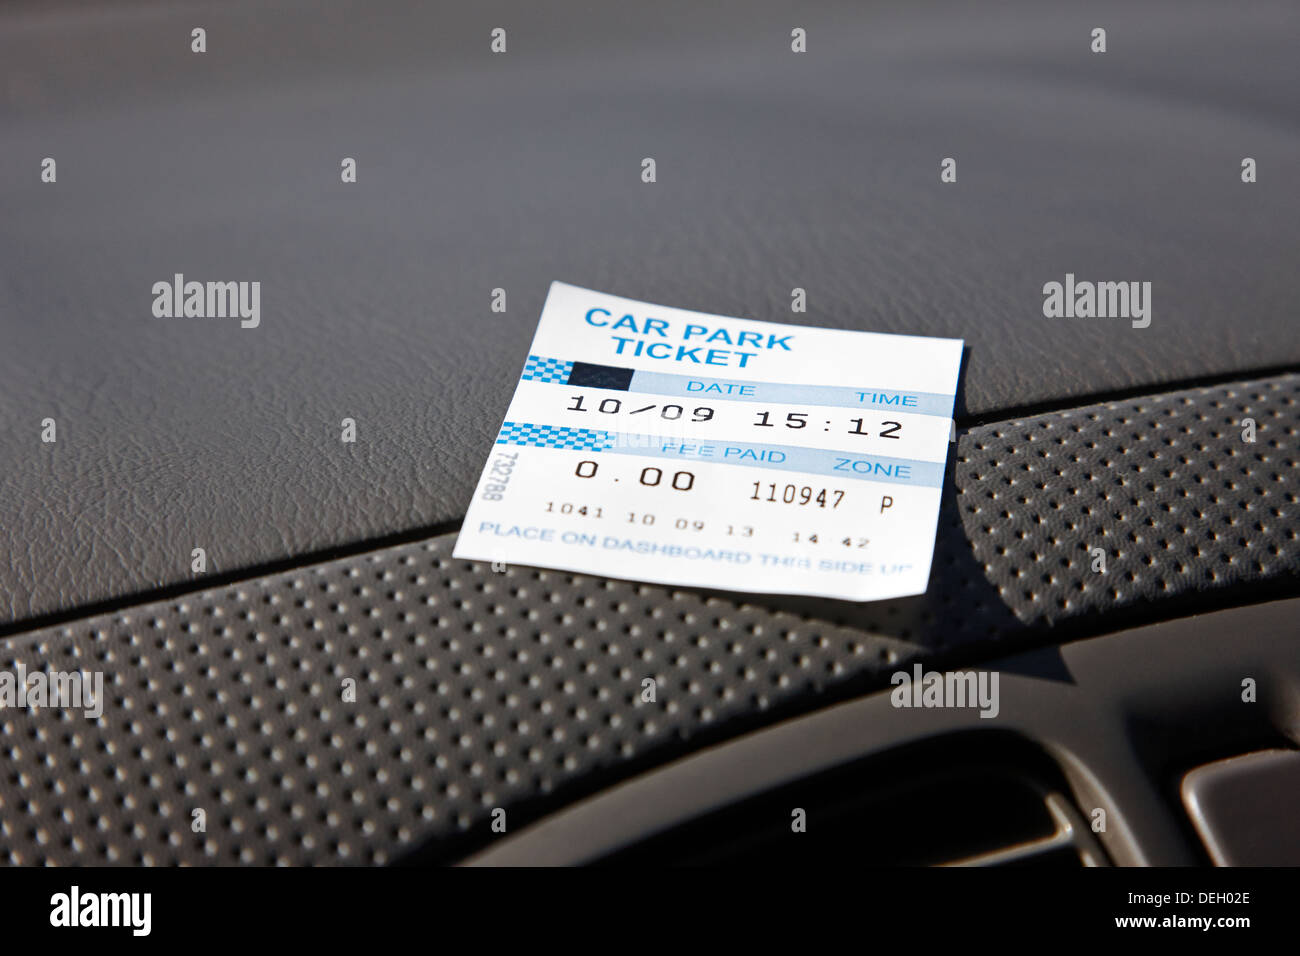 private car park ticket left on show on car dashboard - Stock Image